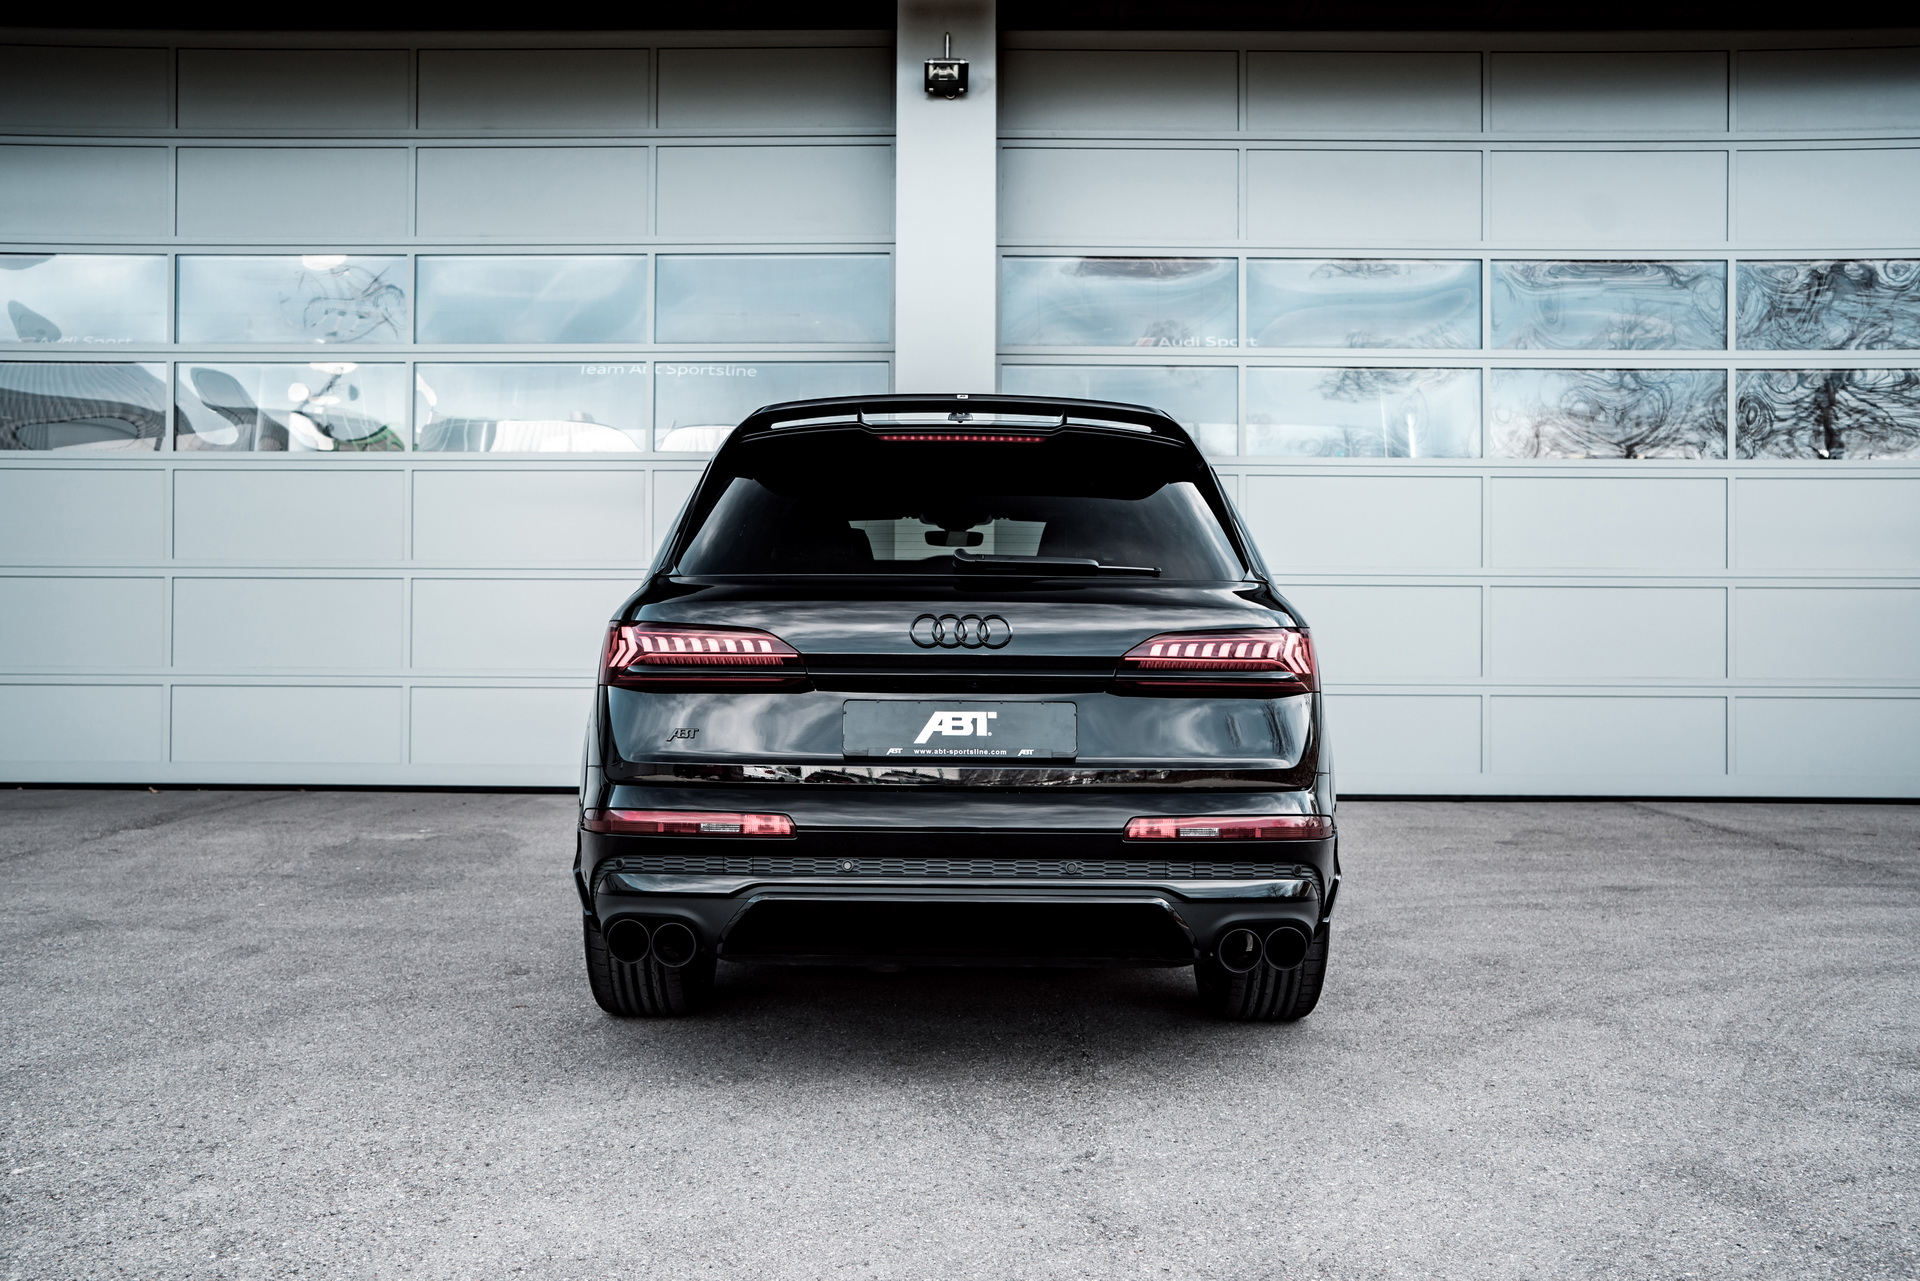 Audi_SQ7_ABT_bodykit_0016